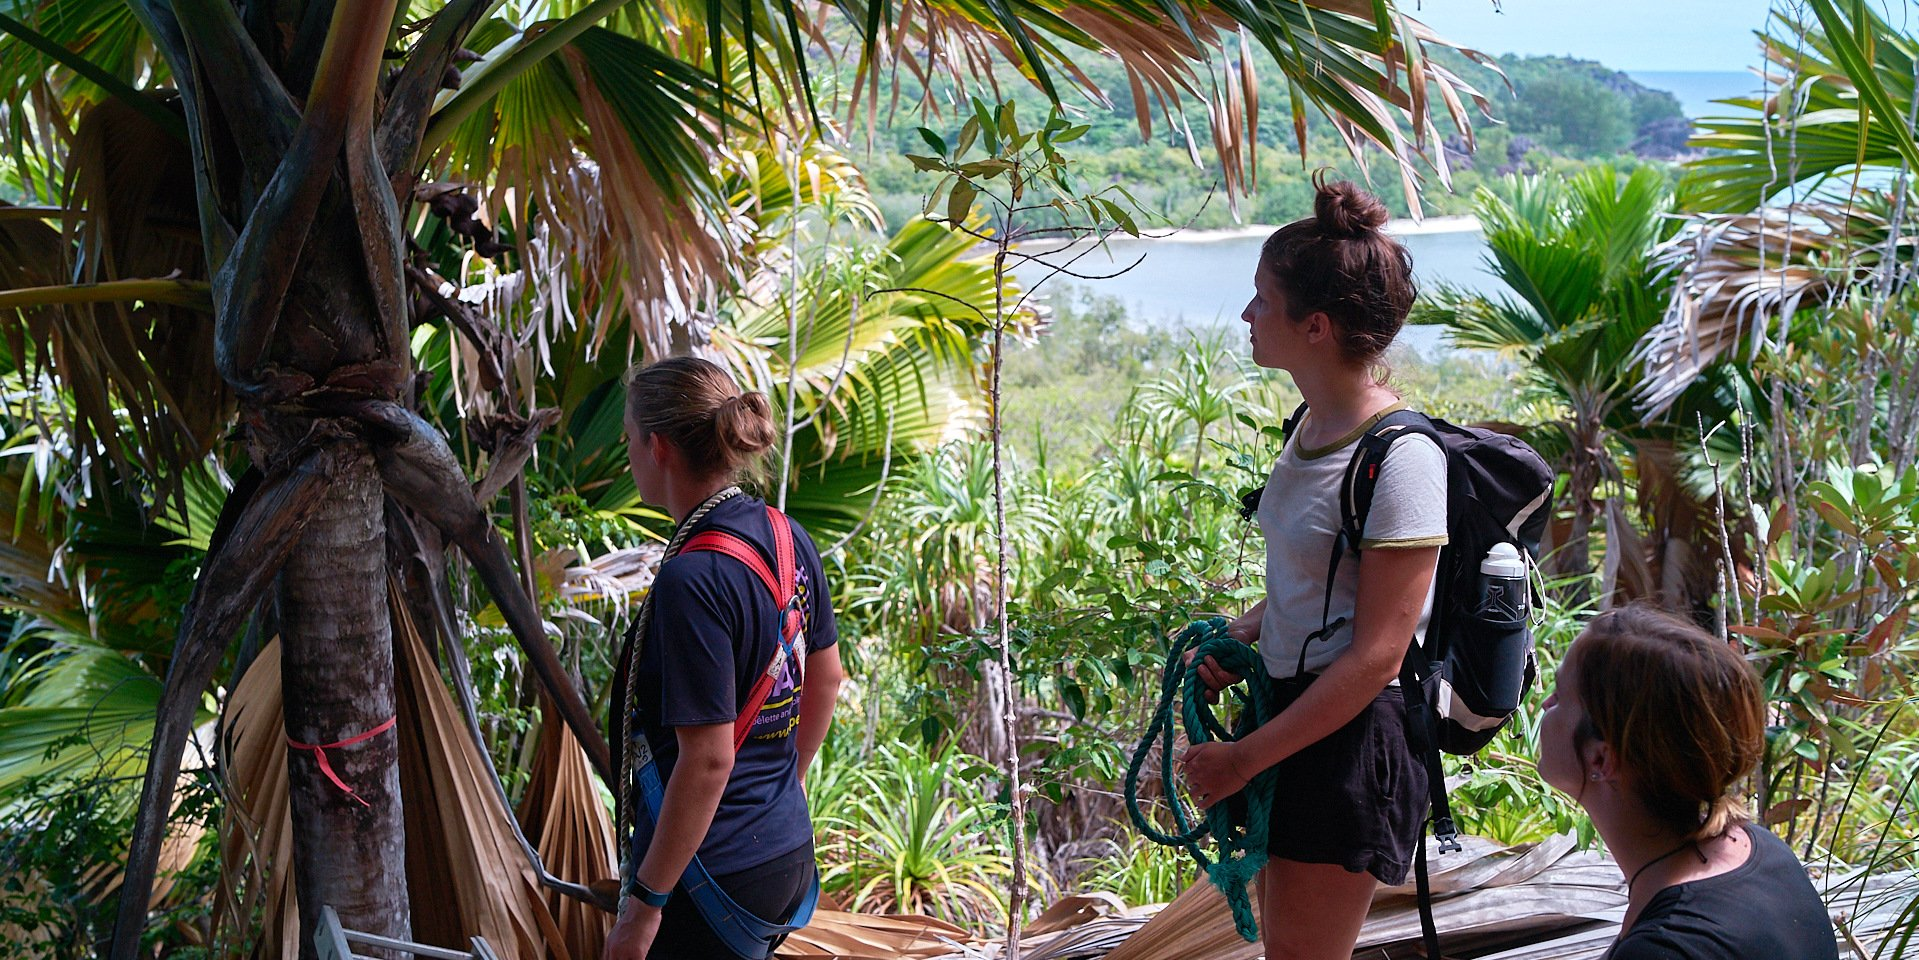 GVI participants conduct surveys of the coco de mer palm.